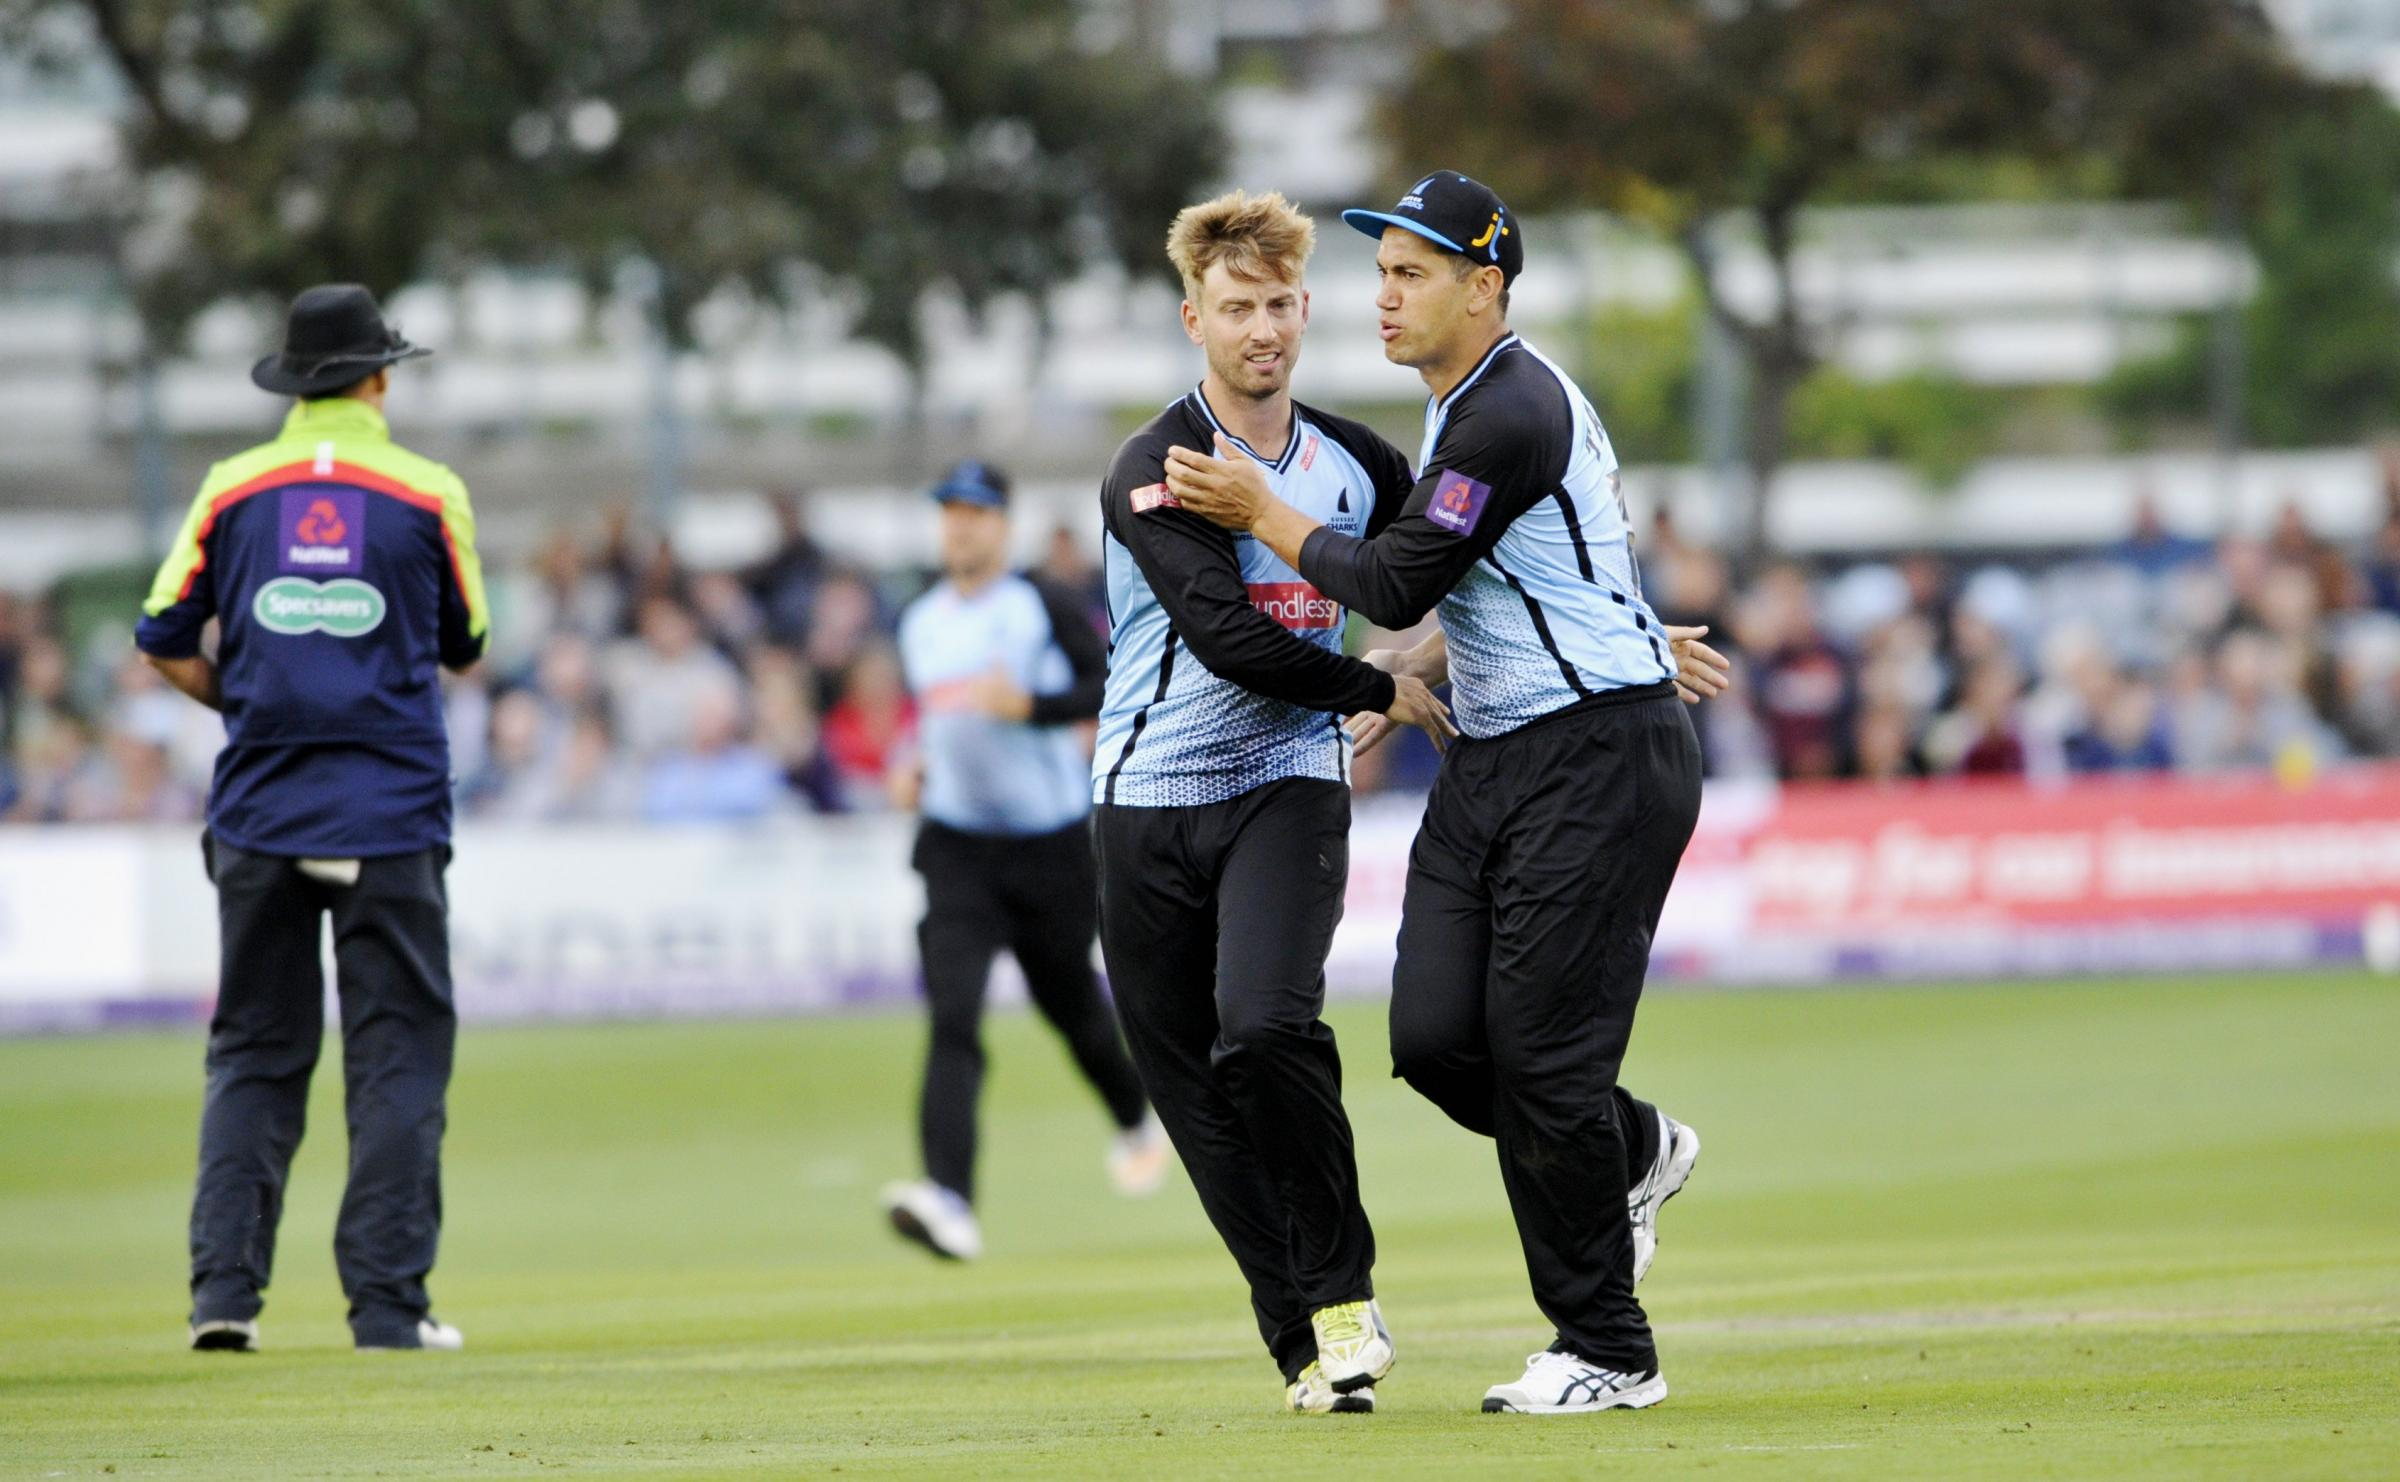 Will Beer has a lot of T20 experience with Sussex Sharks